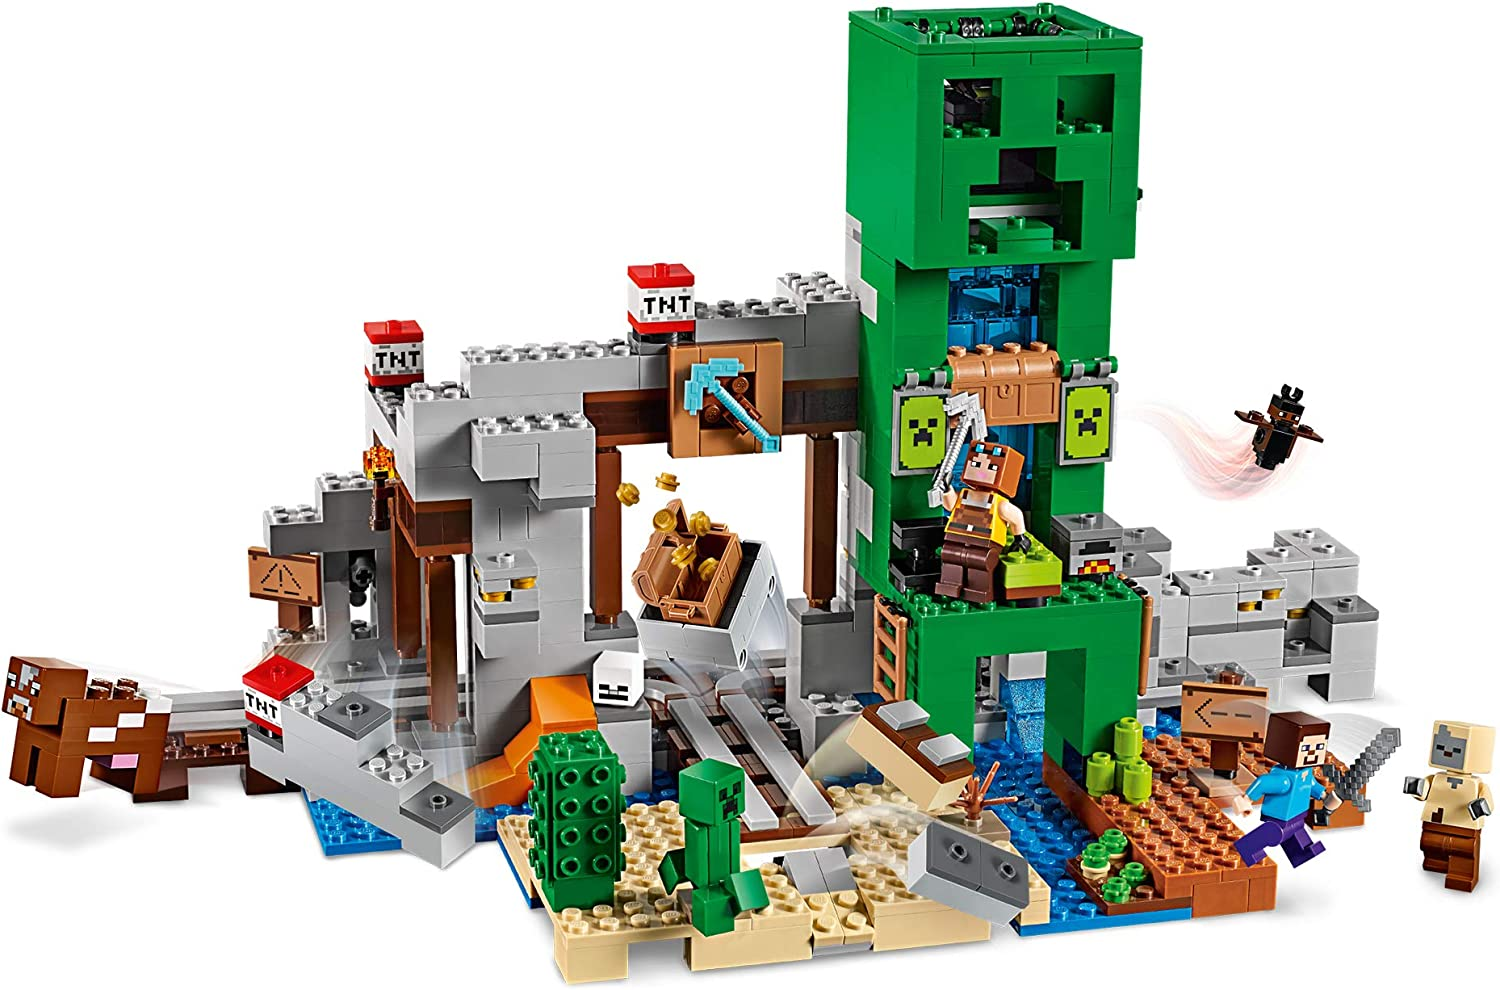 LEGO 21155 Minecraft Mine Steve Minifigure, Blacksmith, Husk, Creeper and Animal Figures plus TNT Elements the Nether Micro World Toys for Kids